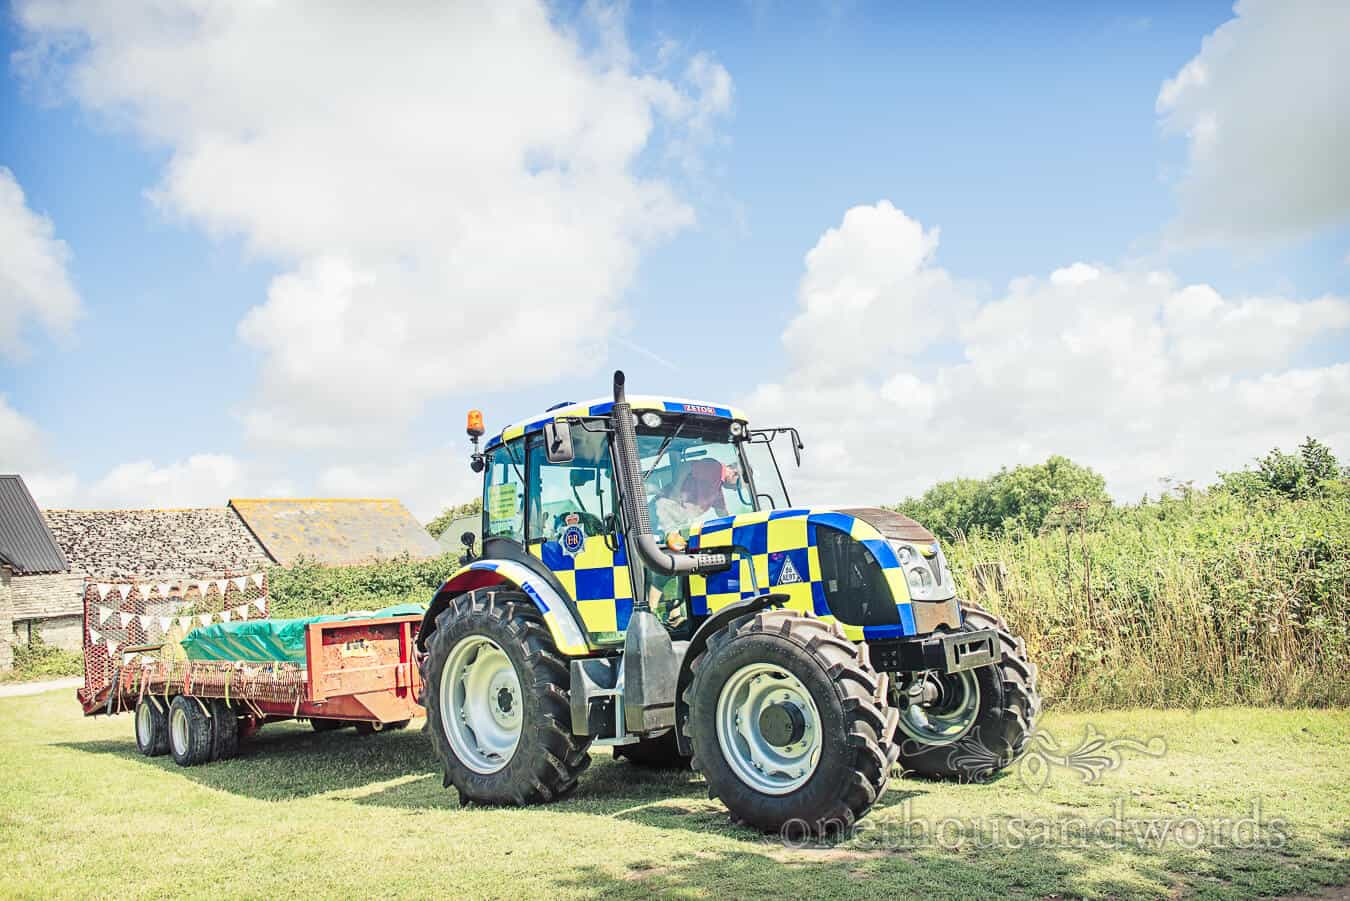 Police Tractor at Dorset Home Wedding